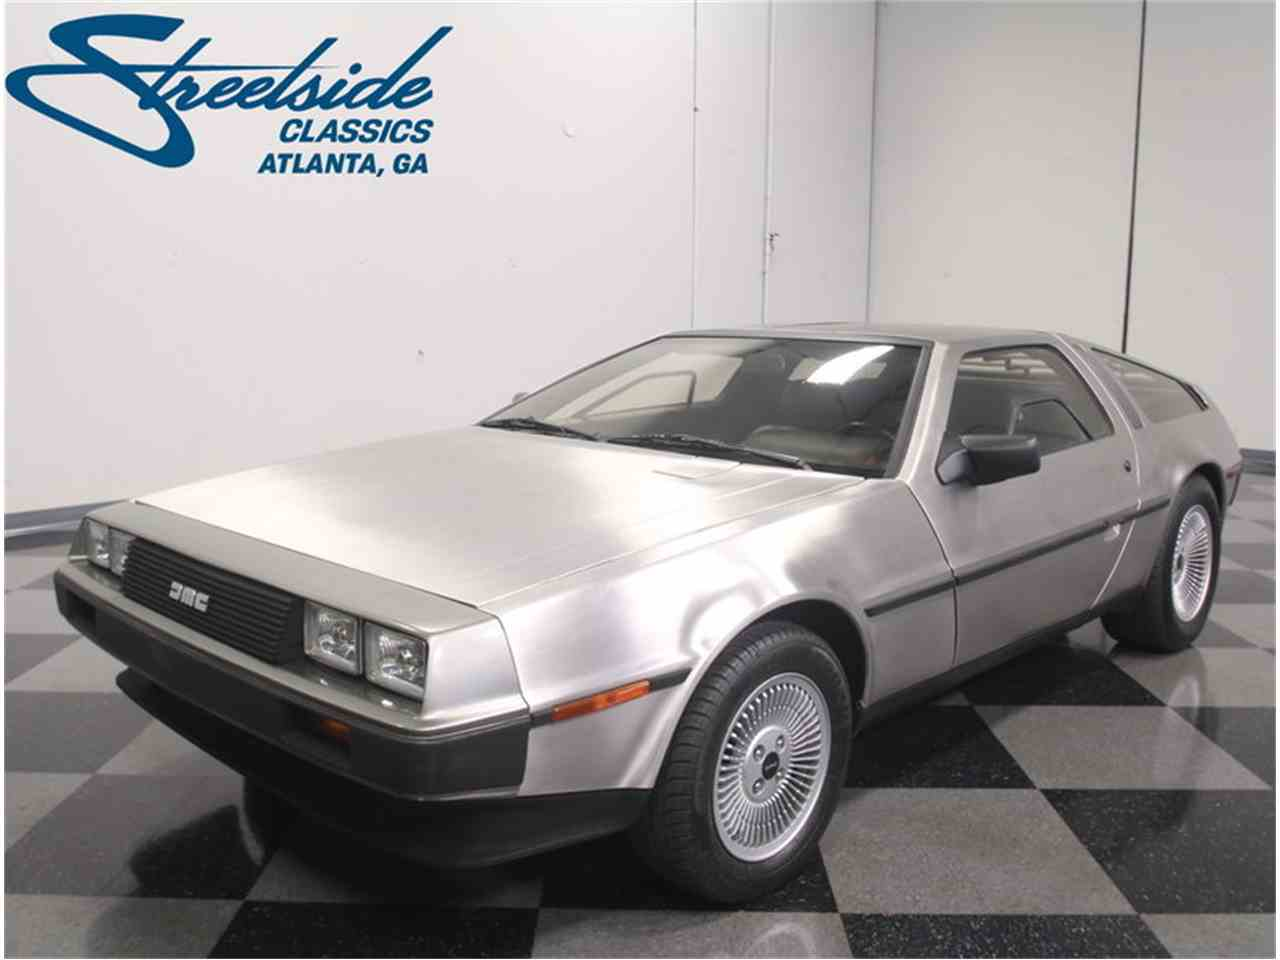 Large Picture of '81 DeLorean DMC-12 - $49,995.00 Offered by Streetside Classics - Atlanta - MGXM